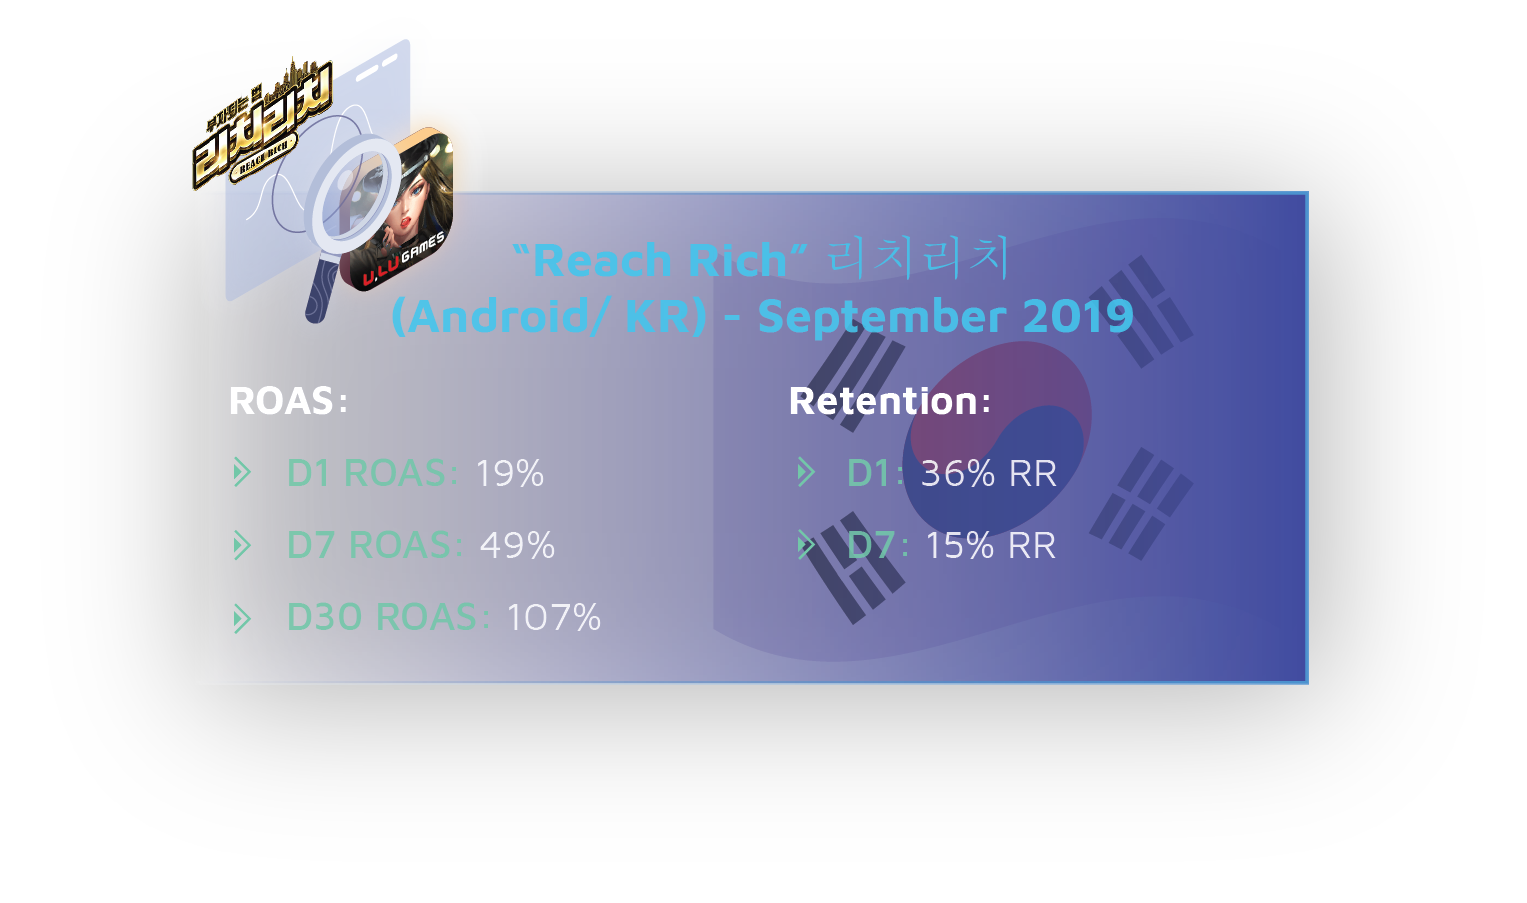 Reach Rich September 2019:  ROAS: D1 ROAS 19%  D7 ROAS 49% D30 ROAS 107% Retention: D1 36% RR D7 15% RR